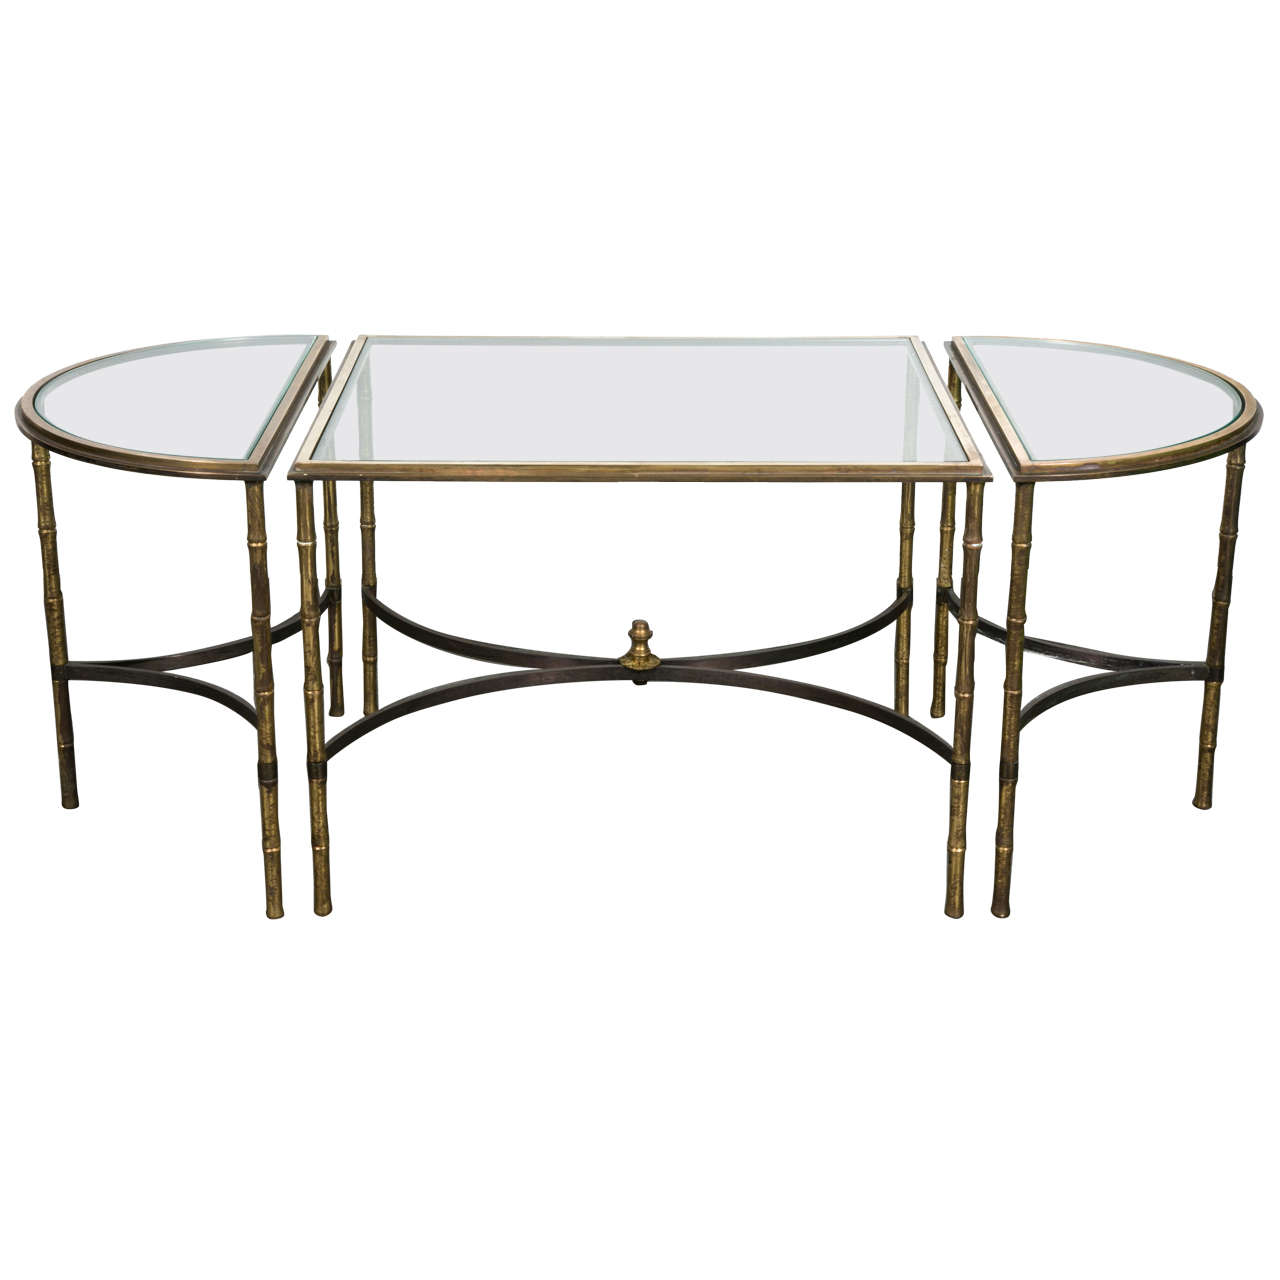 Elegant maison bagu s cocktail table for sale at 1stdibs for Cocktail tables parts